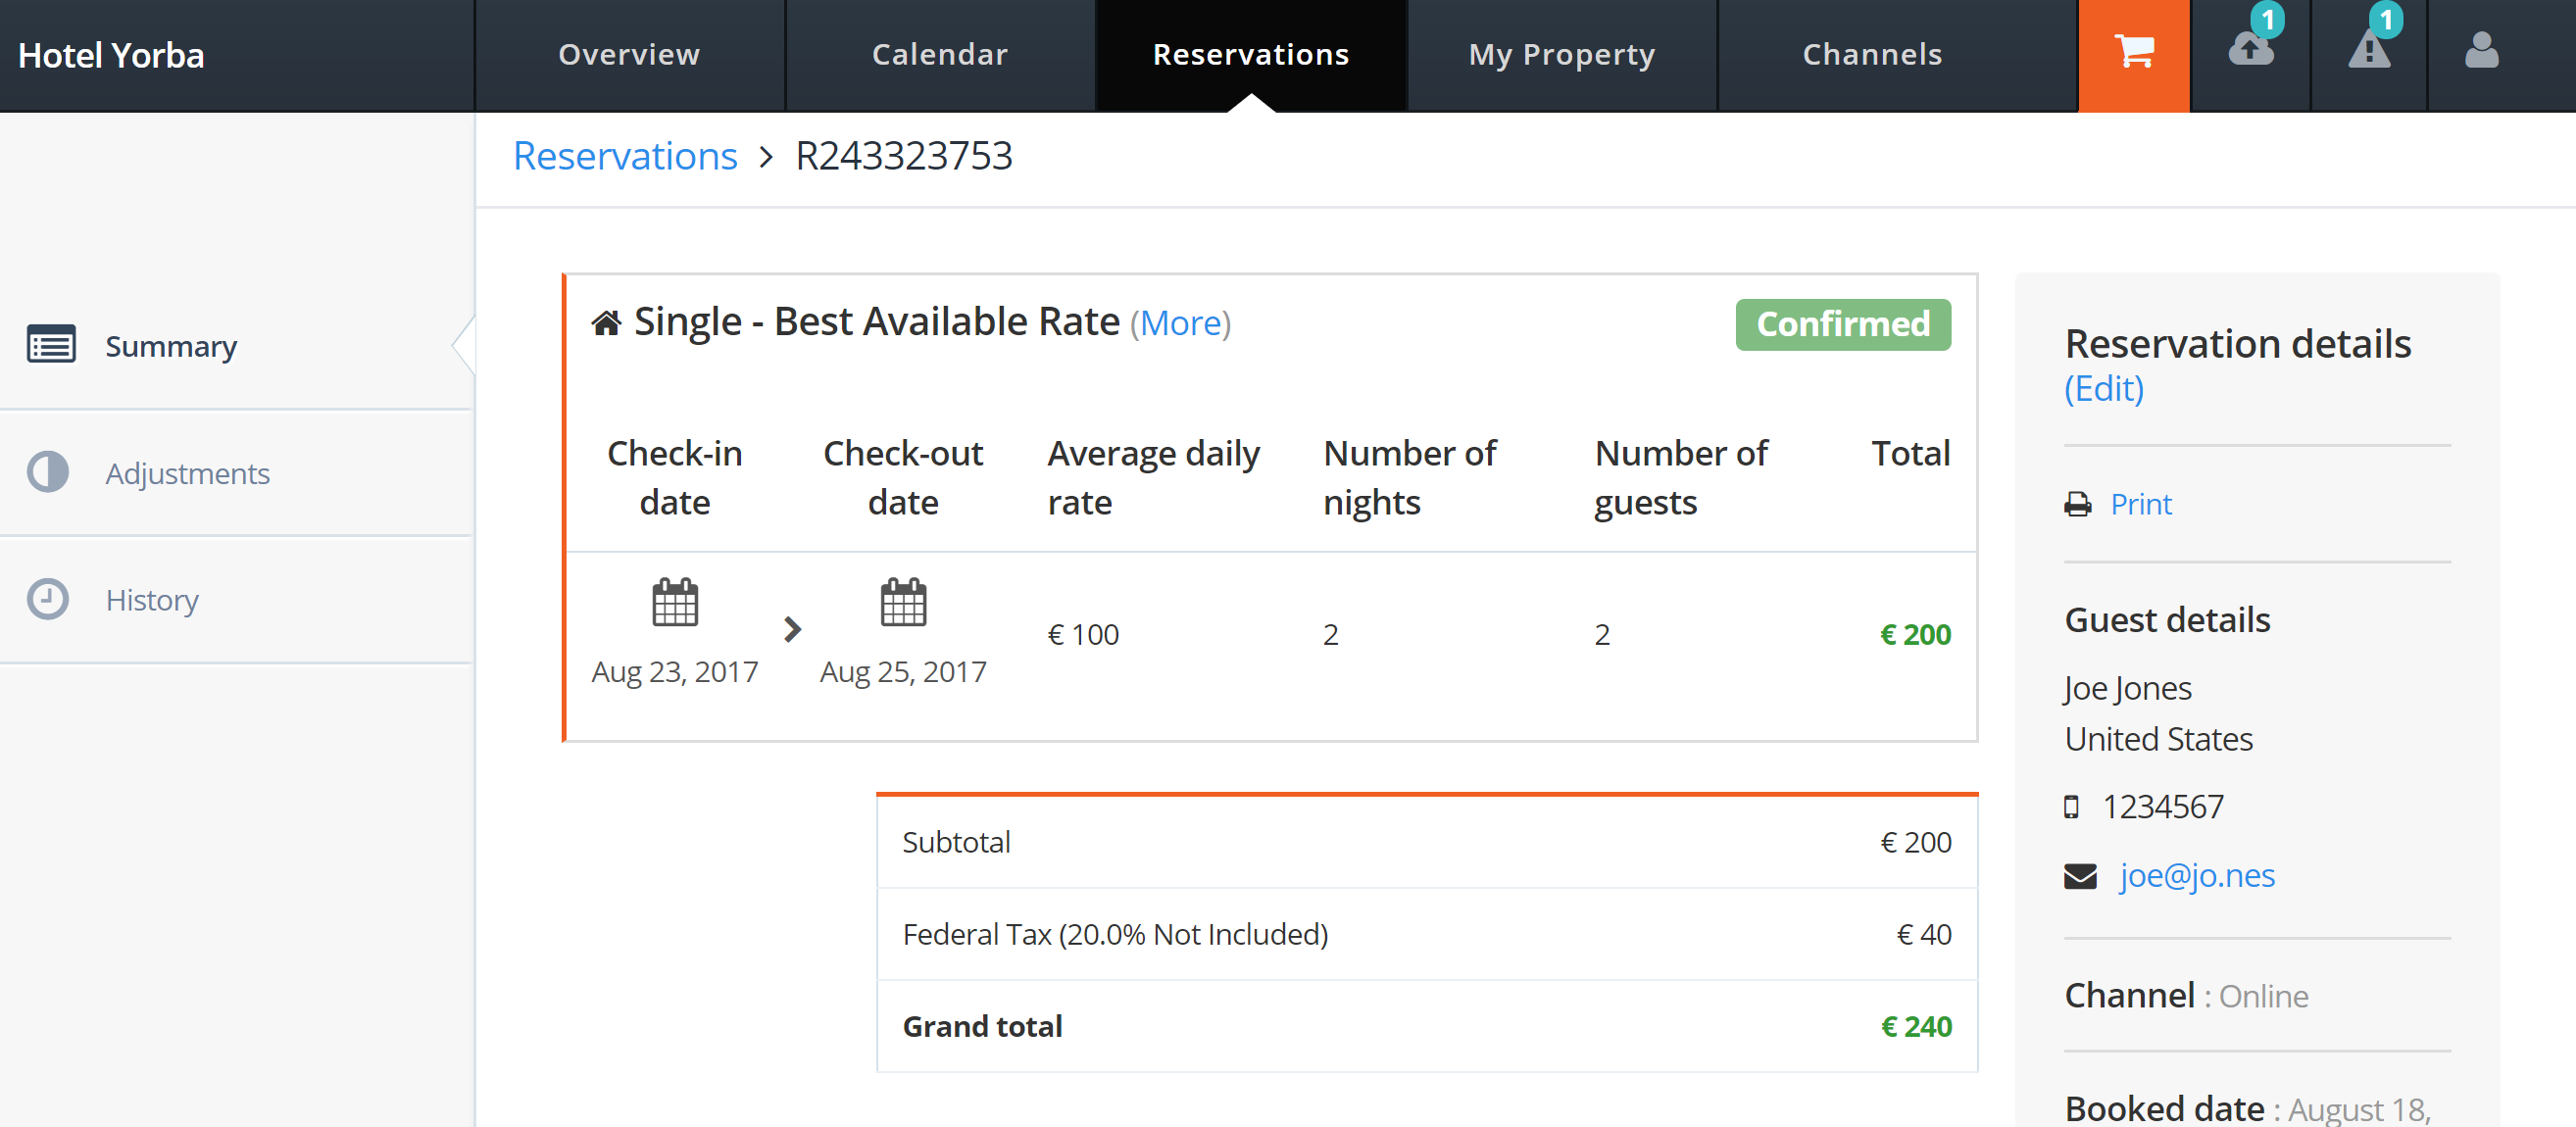 Hotelrunner.com Click 'view' to view the details for the new reservation booking updated to 'Confirmed' in HotelRunner's portal